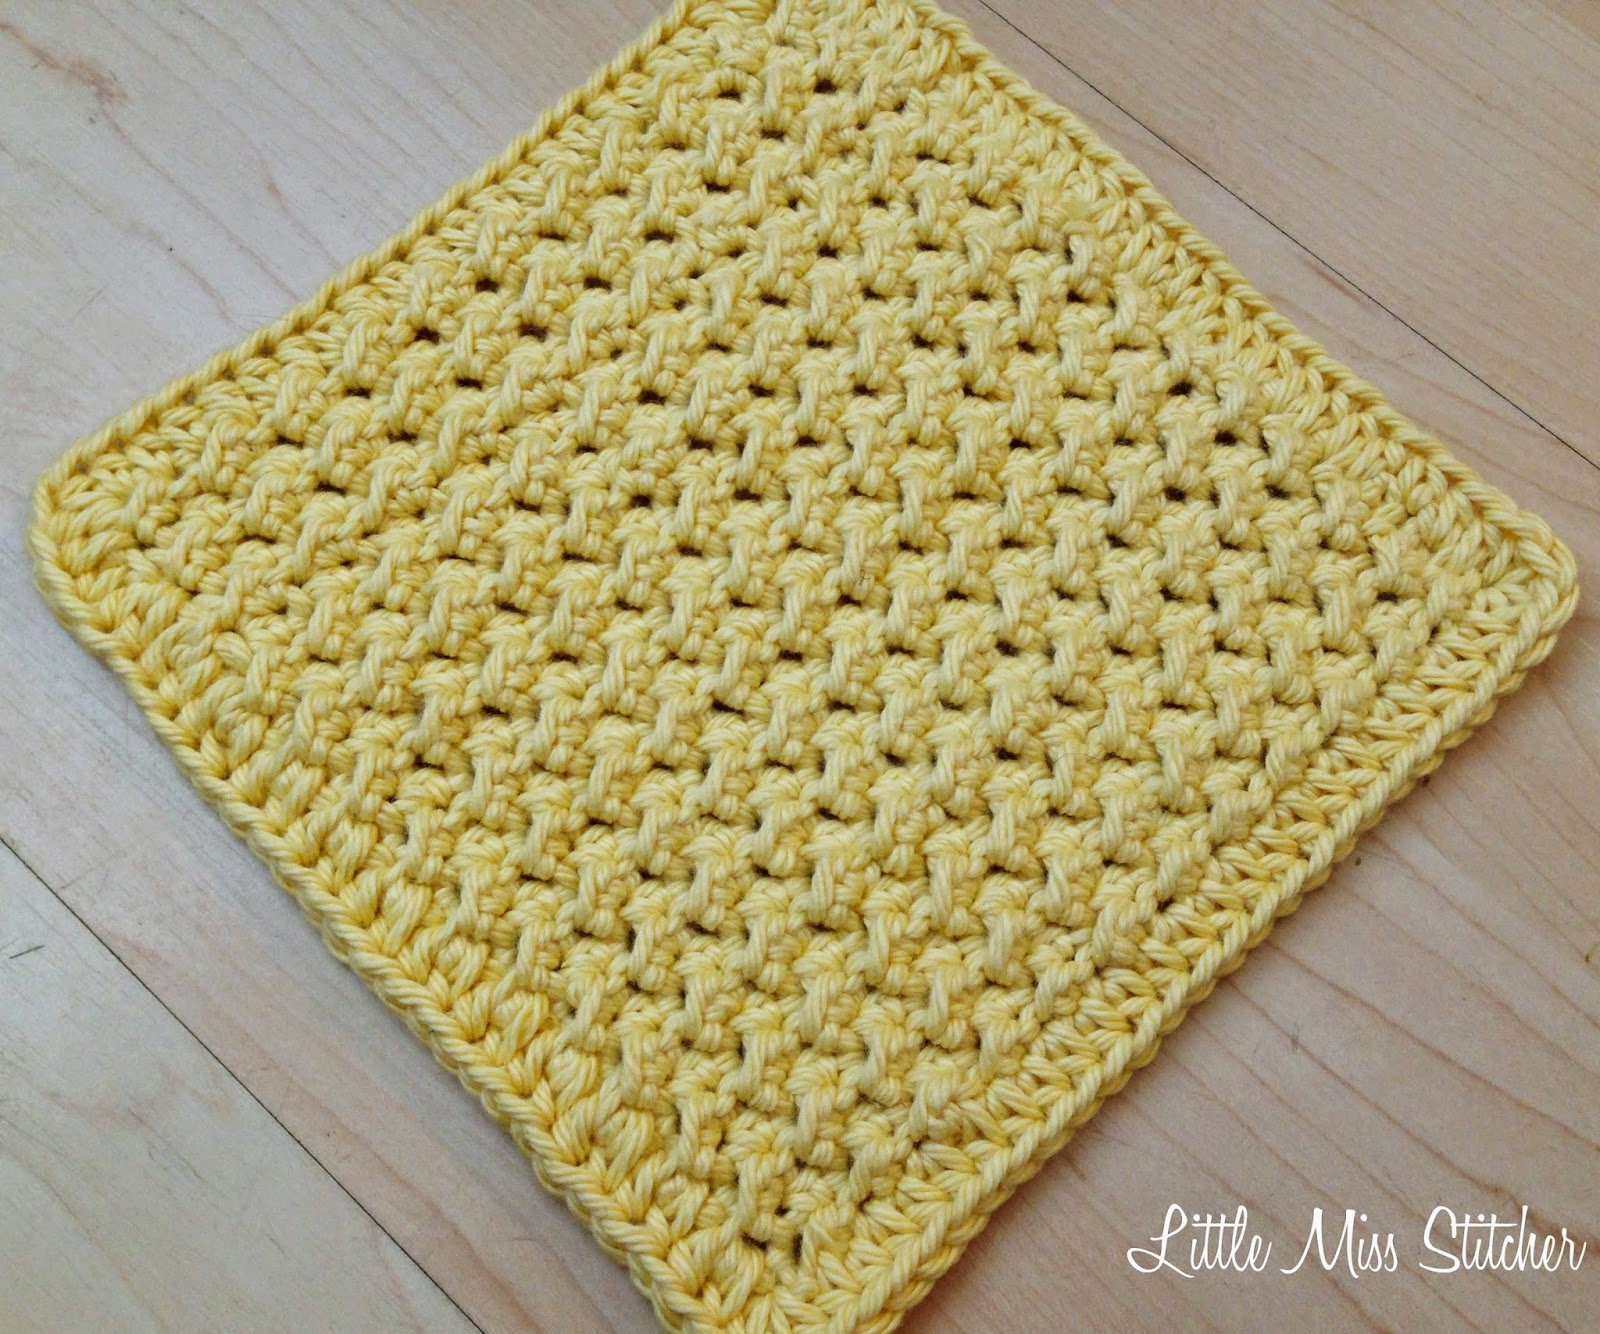 Crocheting Dishcloths : Little Miss Stitcher: 5 Free Crochet Dishcloth Patterns